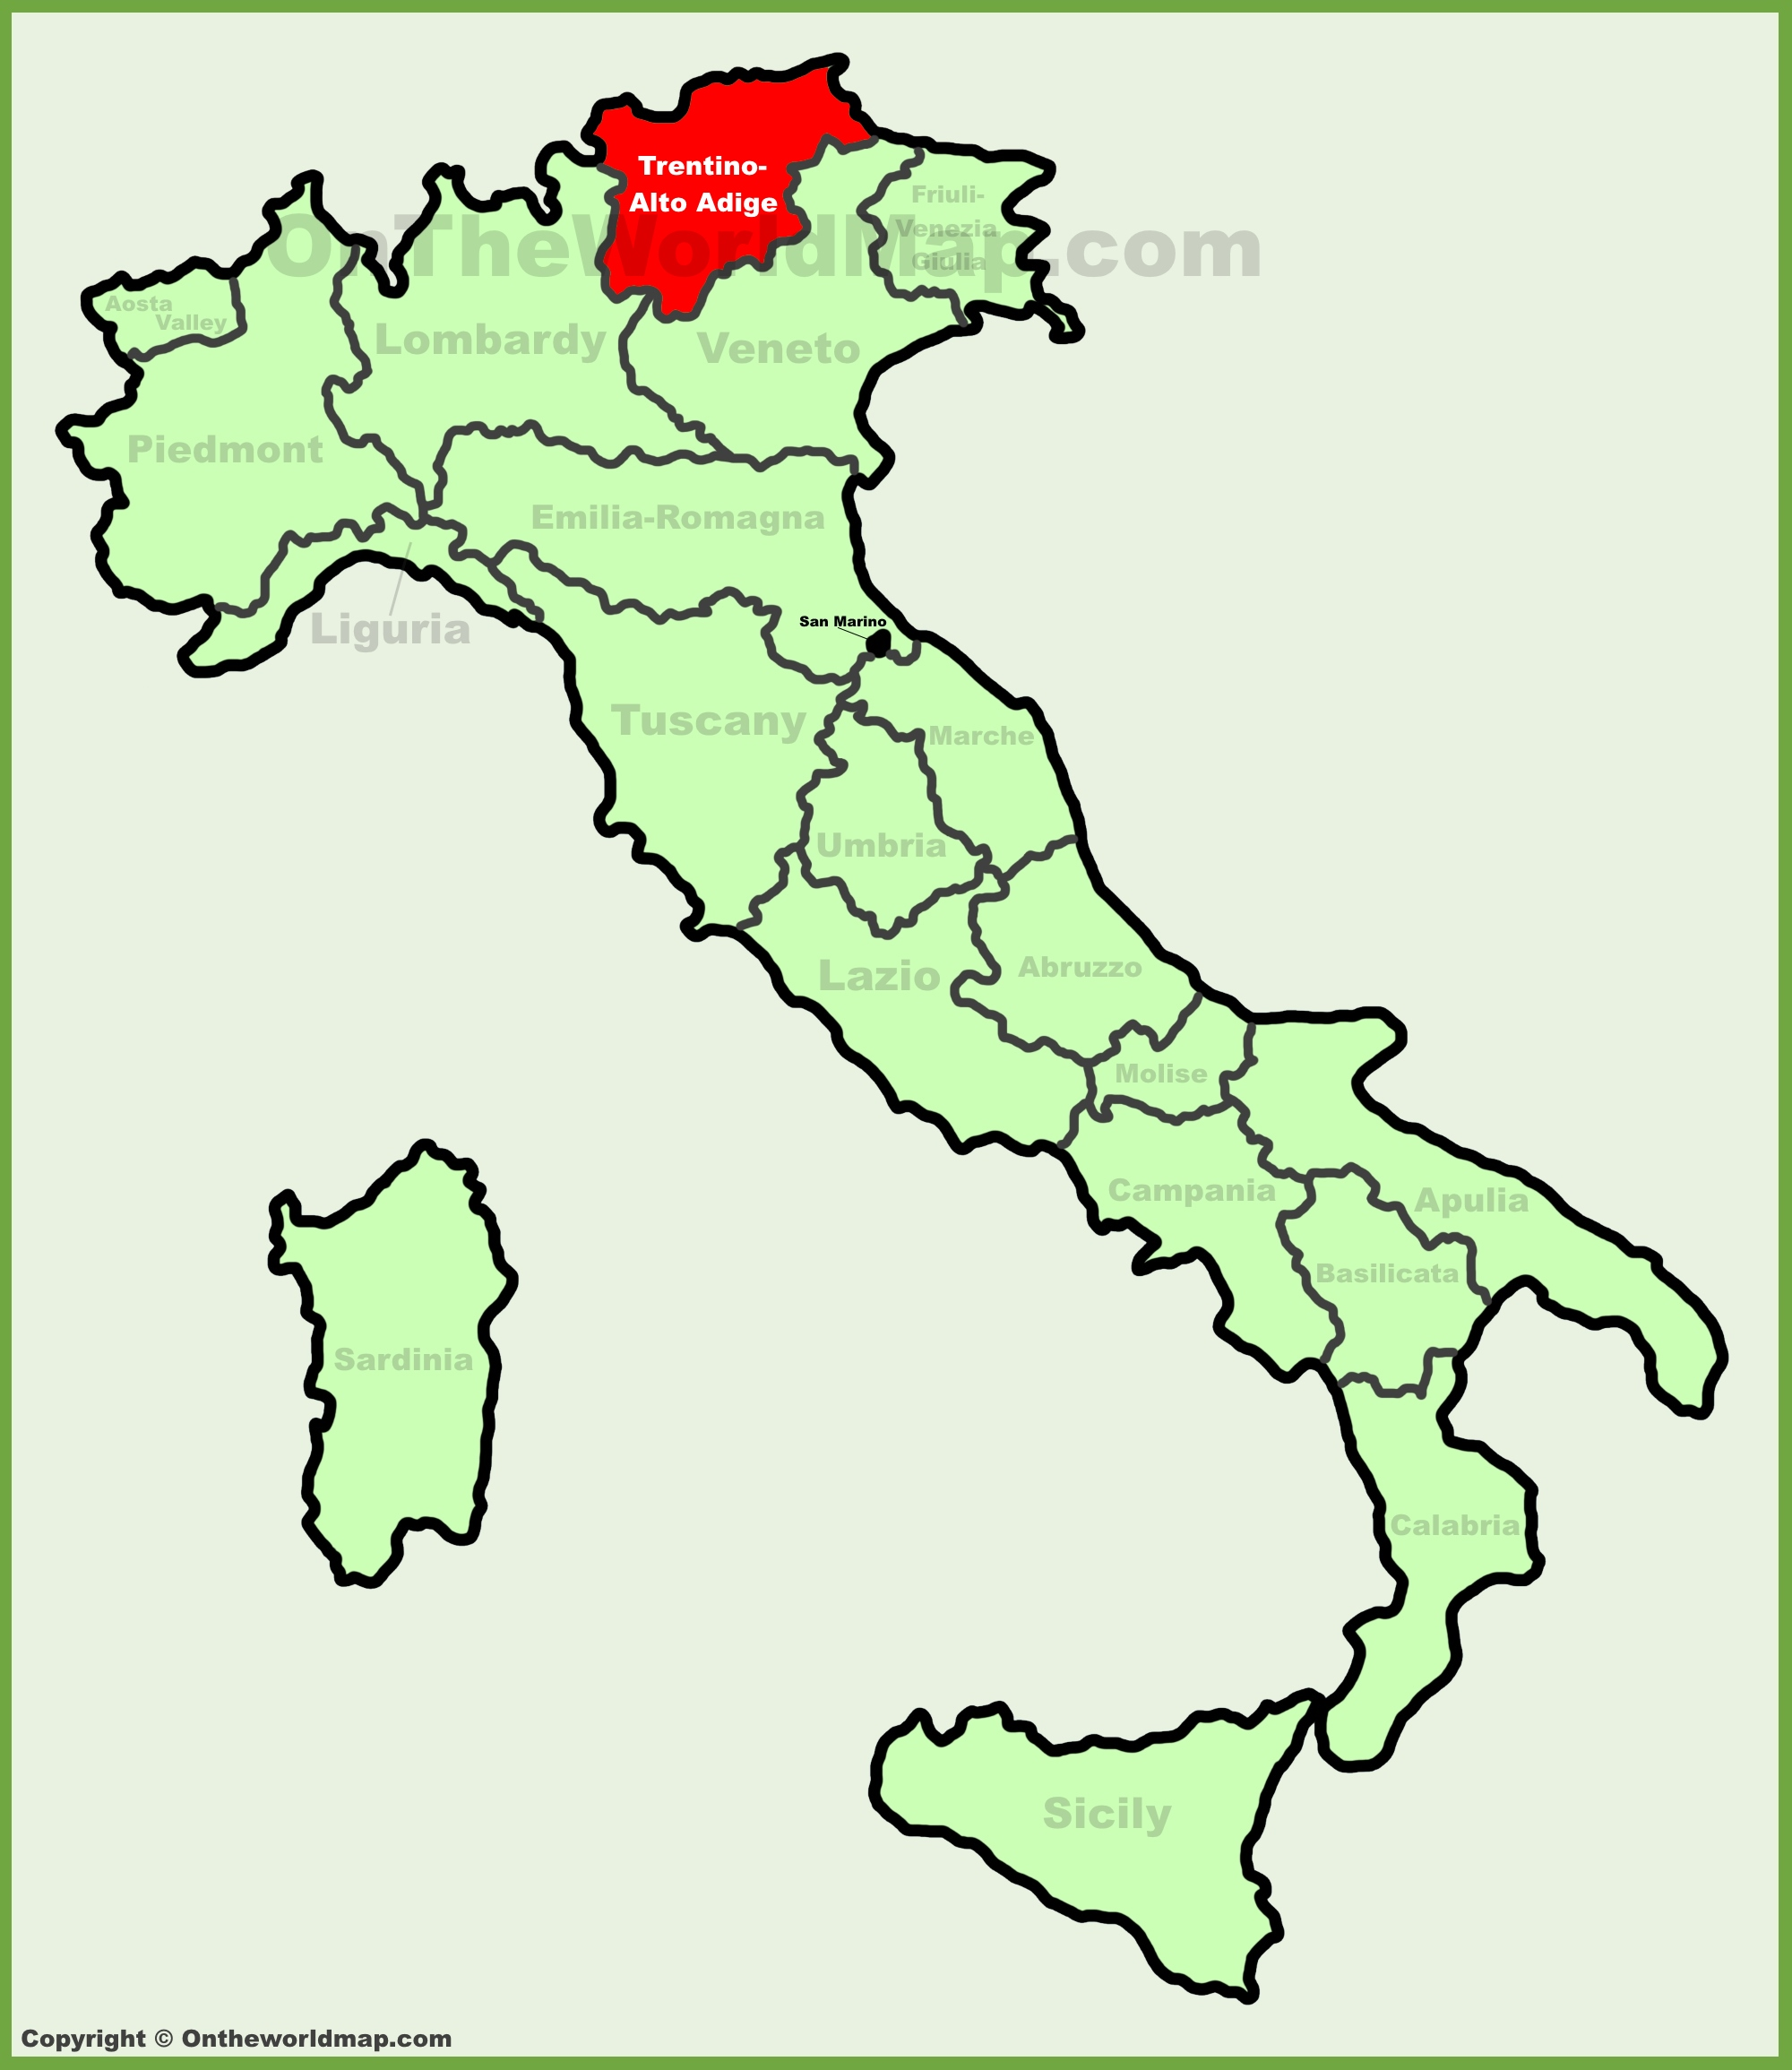 TrentinoAlto Adige location on the Italy map